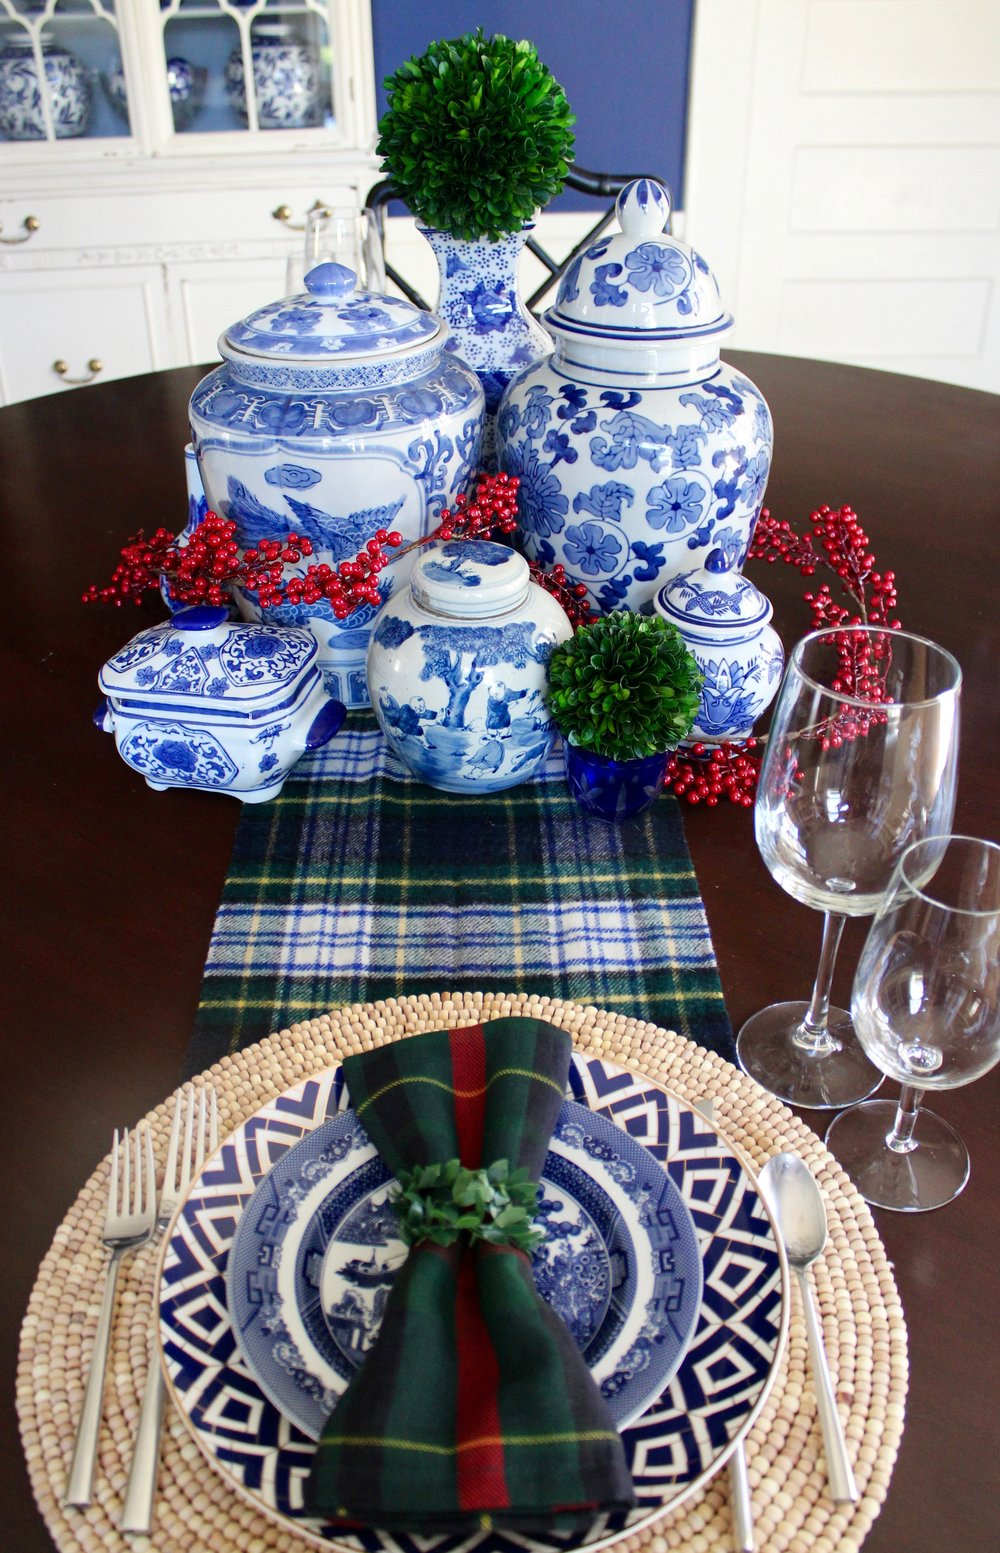 I love mixing china, and this deco pattern with a classic willow print is right up my ally!